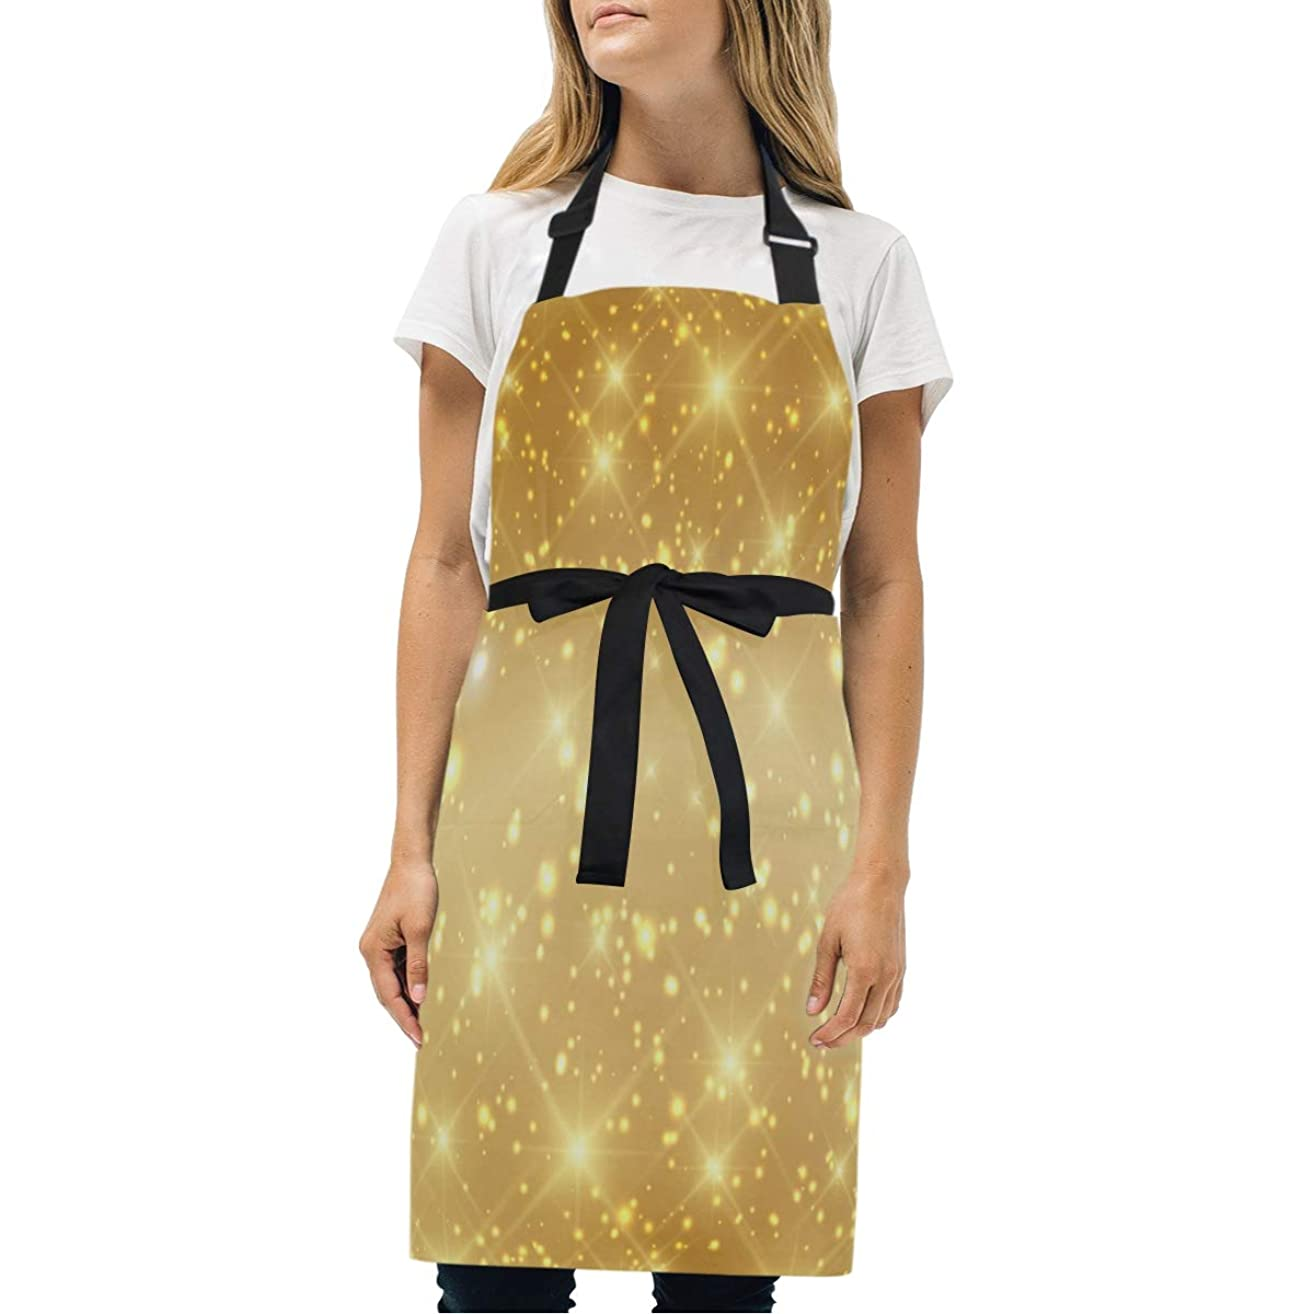 HJudge Womens Aprons Beautiful Gold Sparkle Kitchen Bib Aprons with Pockets Adjustable Buckle on Neck